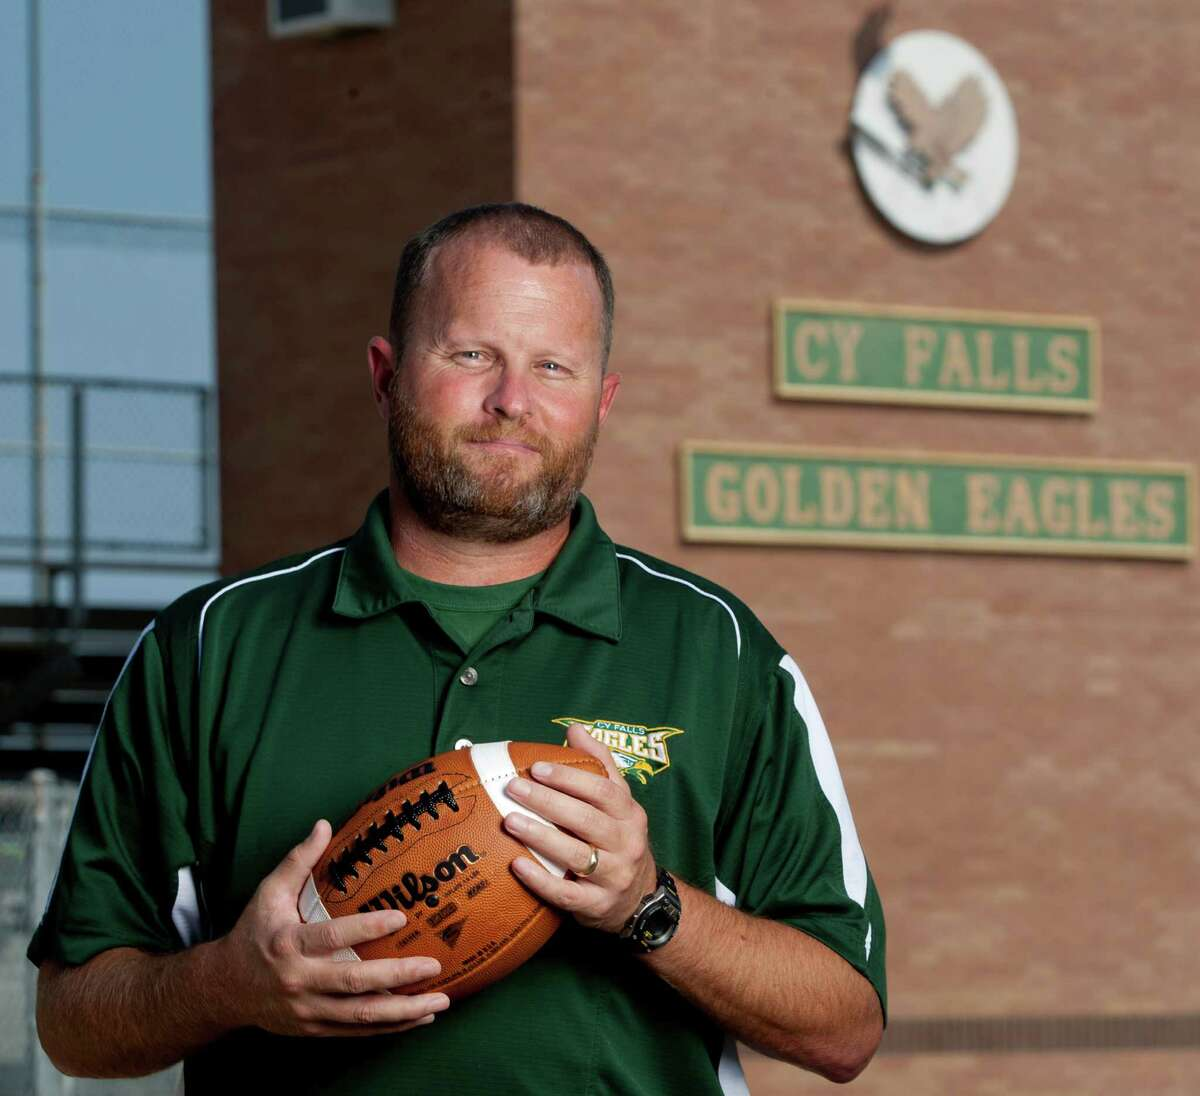 8/1/11: Cypress Falls High School head football coach and Athletic Director, Kirk Eaton at Cypress Falls High School in Cypress, Texas Cypress Falls football coach Kirk Eaton is entering his first year as a head coach. Last week, at Canyon Lake, he nearly drowned before two of the district's assistant coaches came to his rescue. Eaton is almost fully recovered from his injuries and will coach the upcoming season .For the Chronicle: Thomas B. Shea